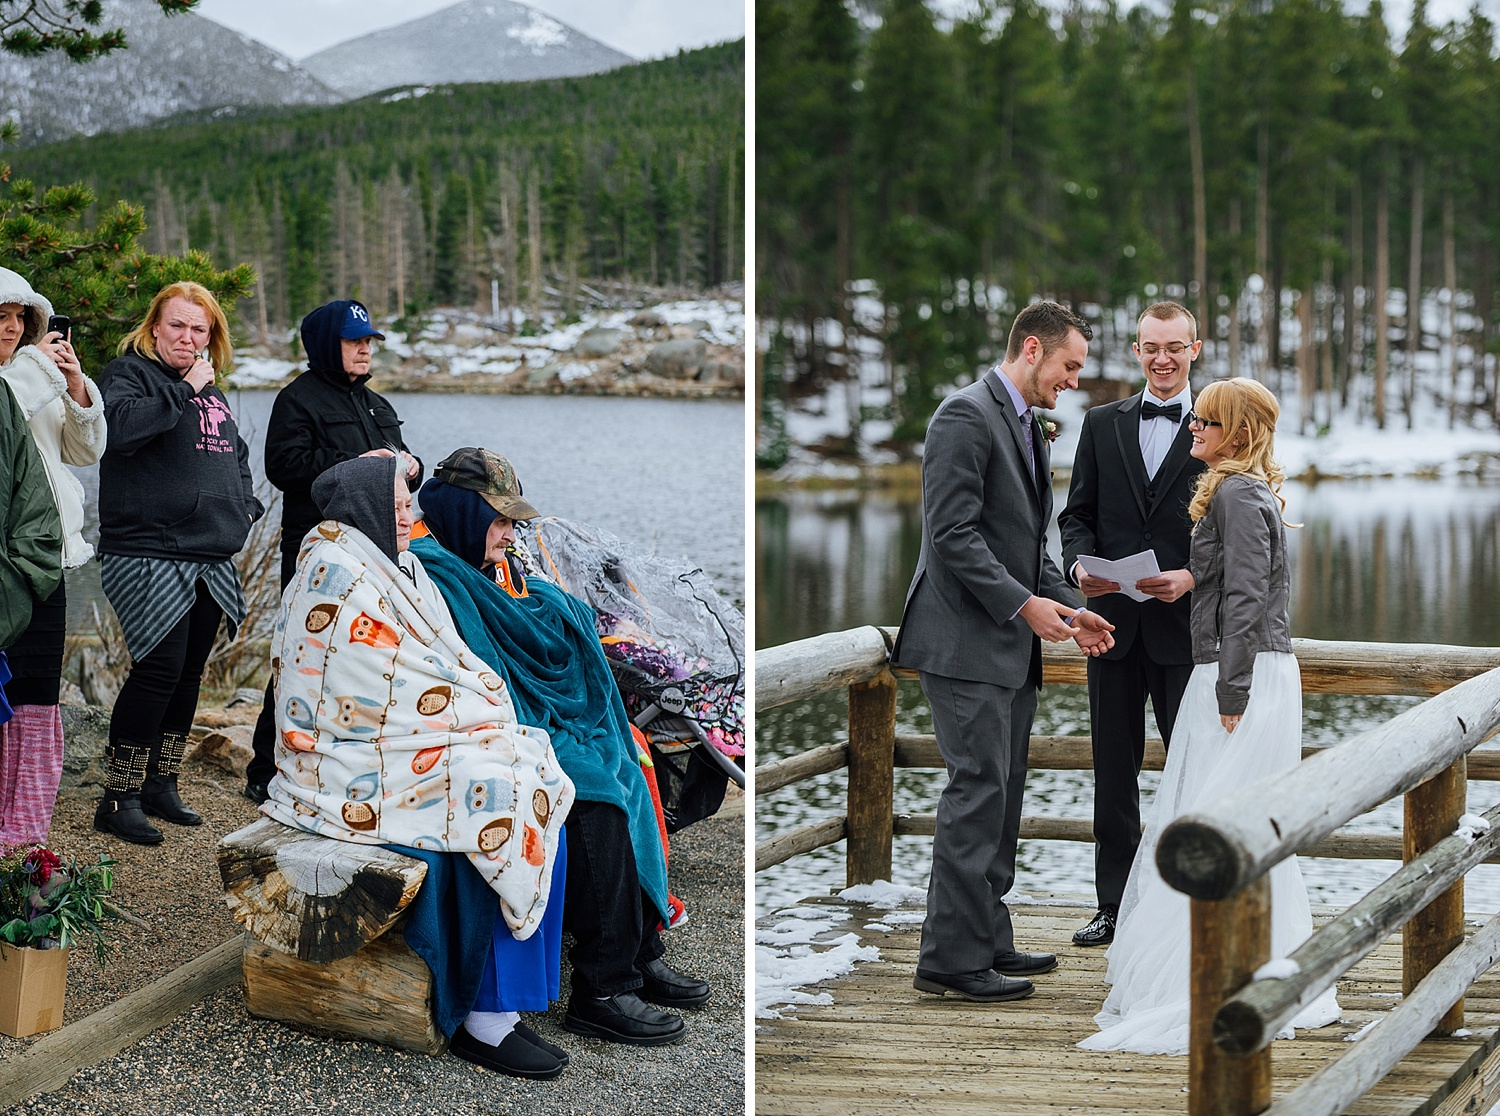 I love how some of the guests are cuddled up in blankets! It's such a sweet and intimate elopement. And with Sprague Lake in the background, it makes it look unreal! Photo by Maddie Mae Photography